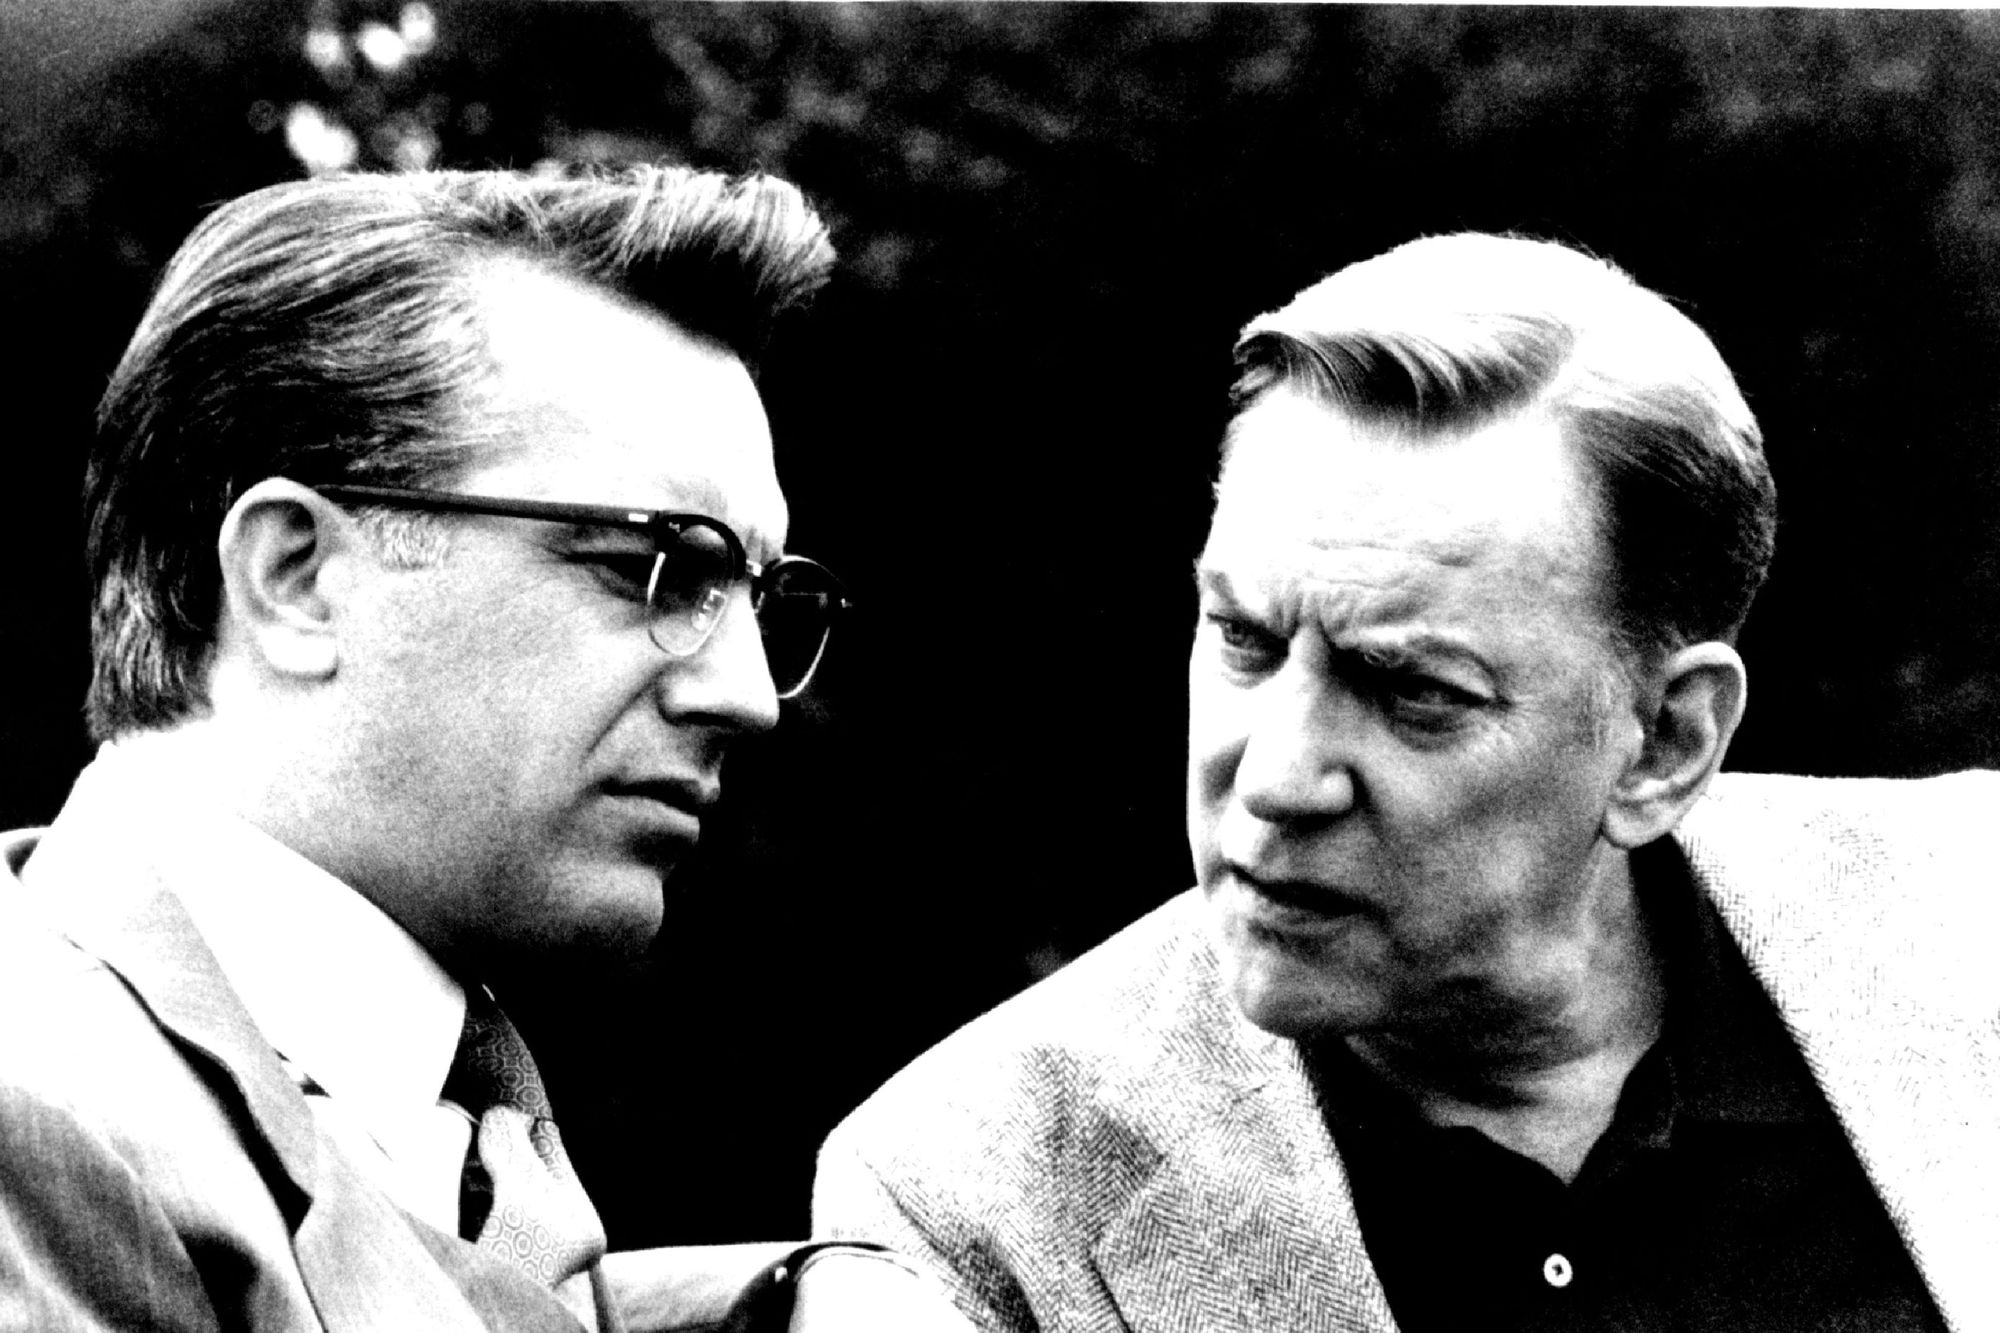 New Orleans District Attorney Jim Garrison (Kevin Costner) secretly meets with Colonel X (Donald Sutherland) in 'JFK.'